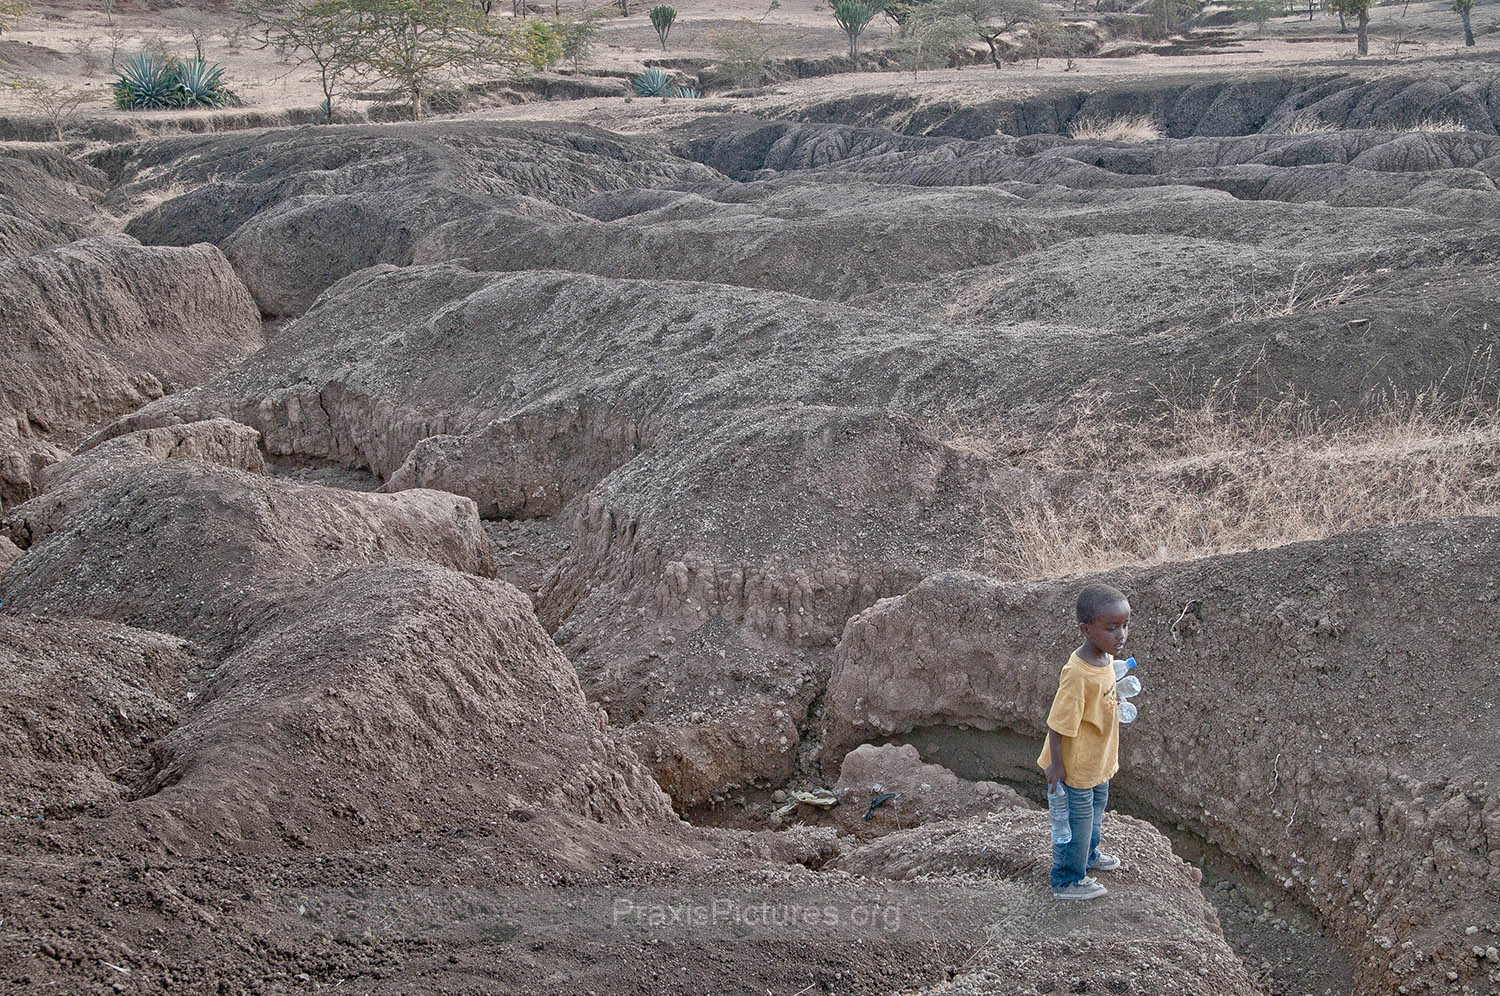 SOIL EROSION - The parched earth has altered the landscape surrounding Ngorbob. Once green fields have eroded leaving the area dangerous for the local children like Baraka.